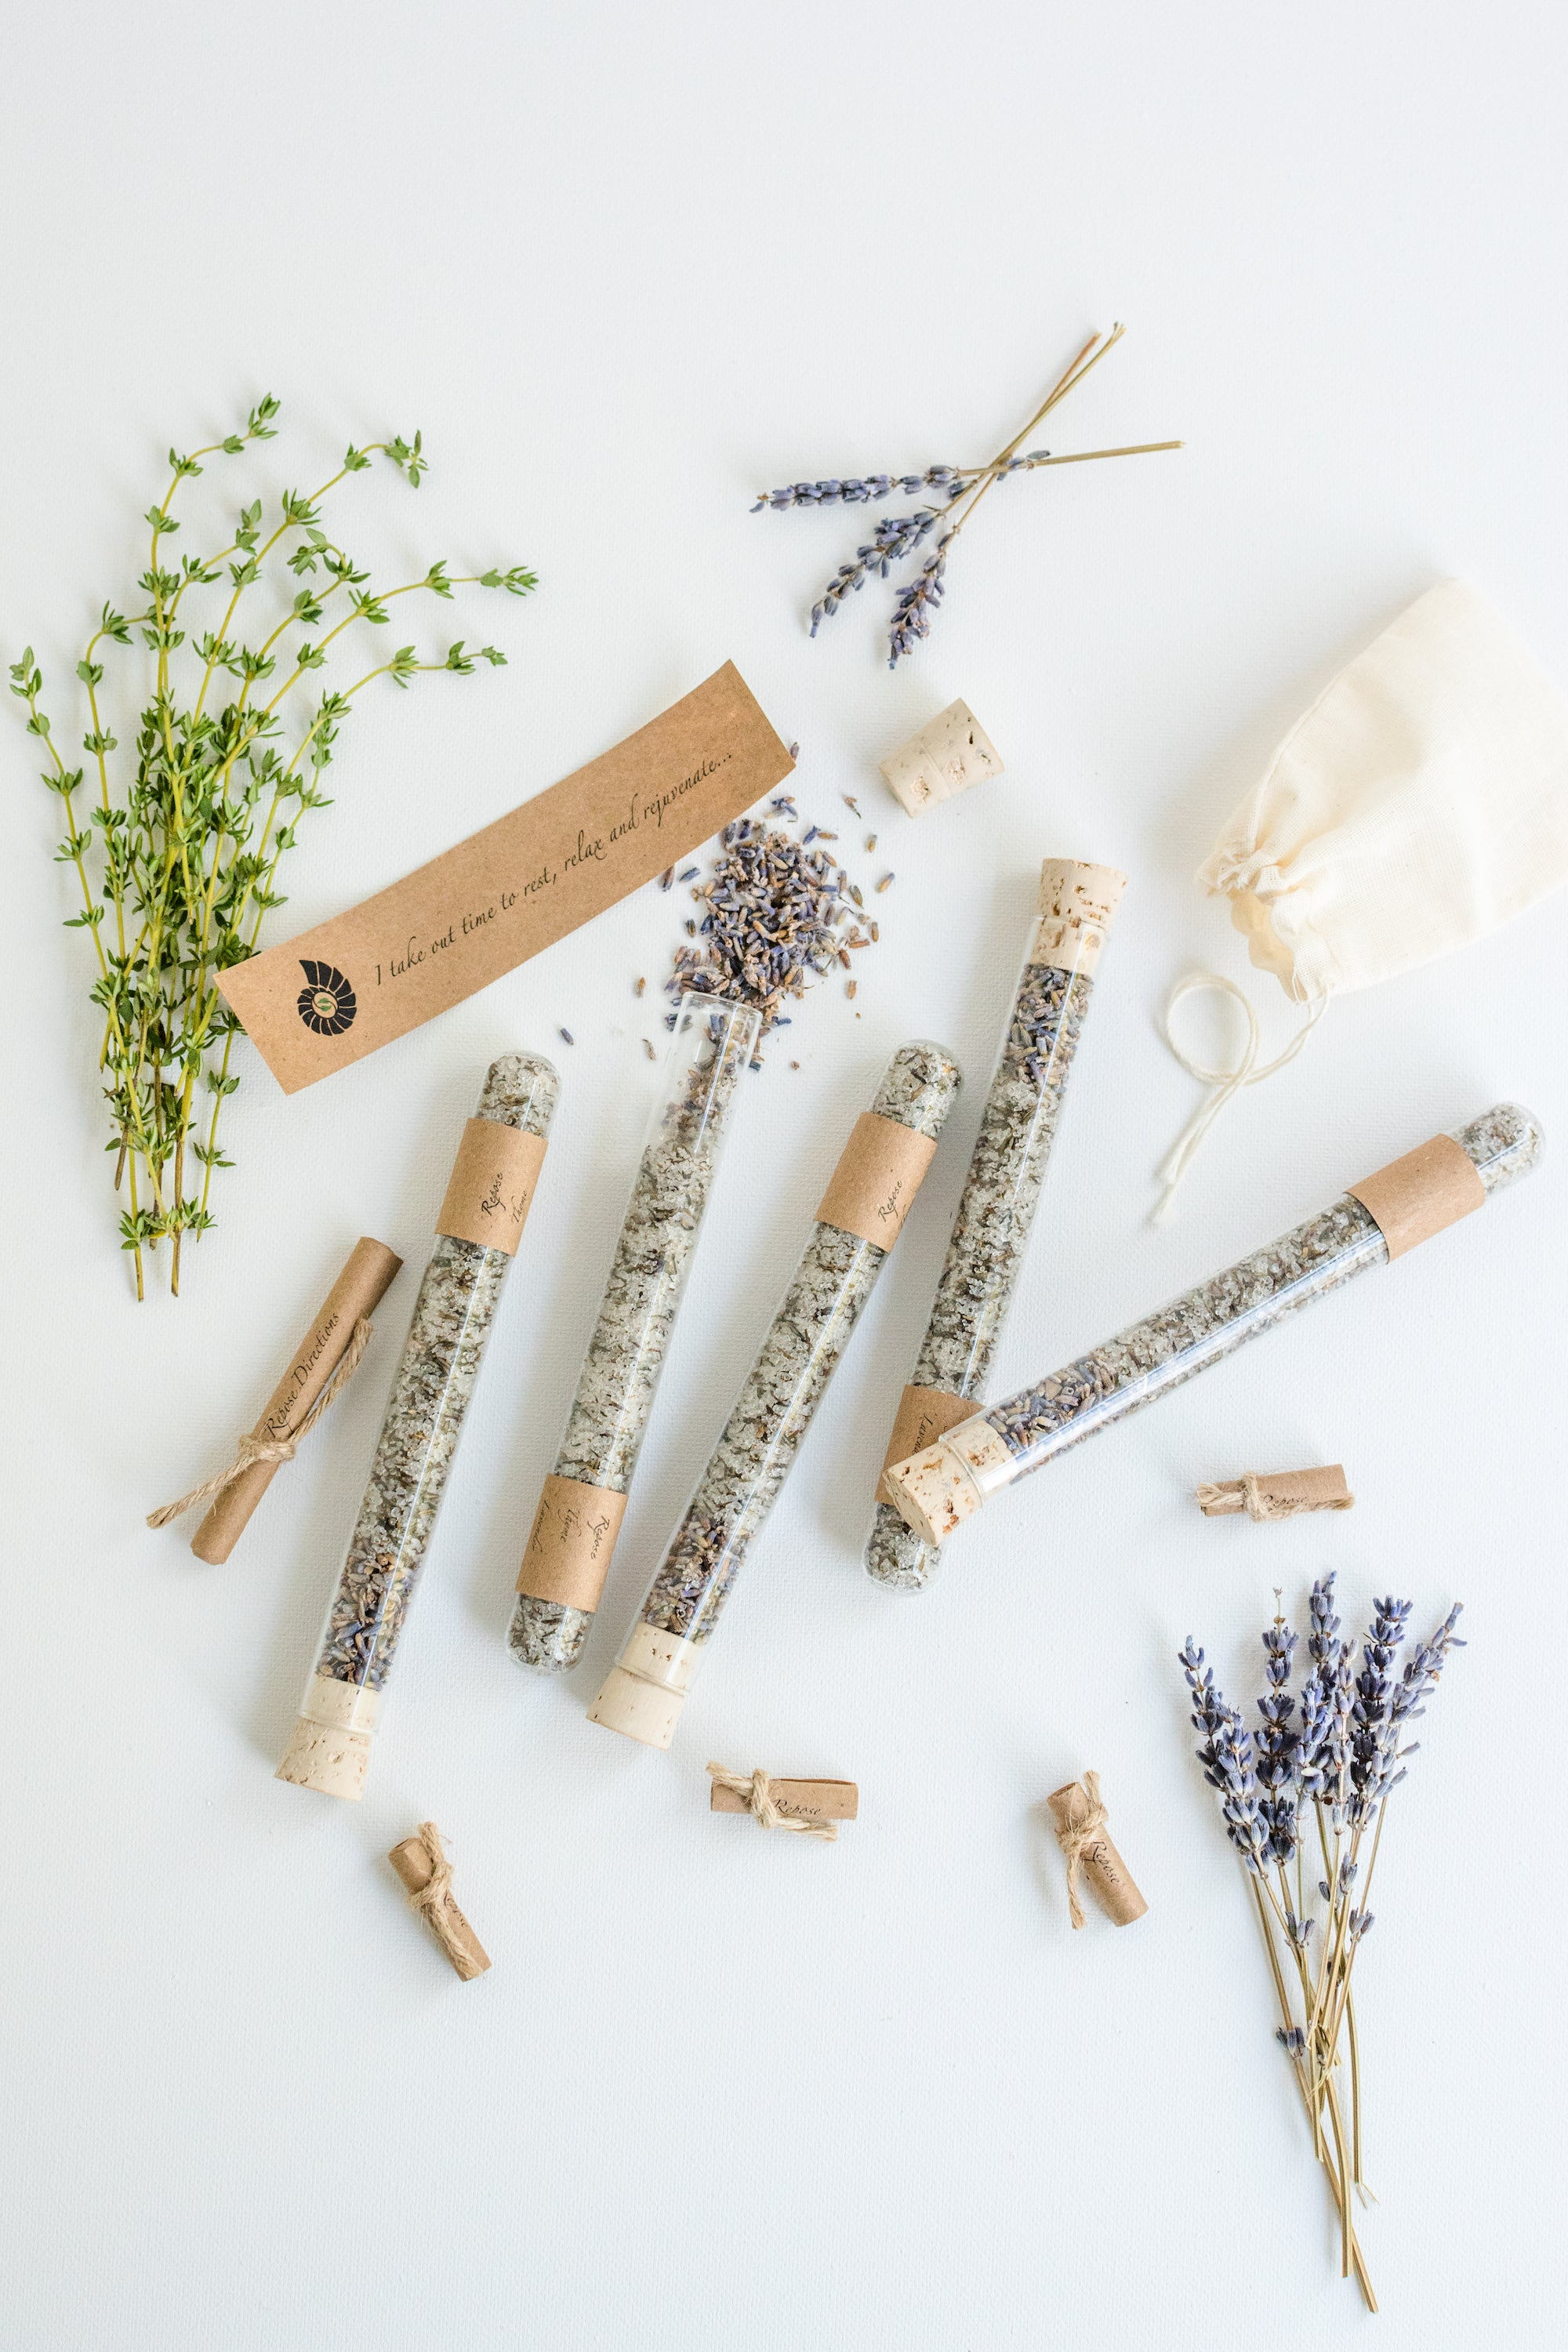 Truly Aesthetic Repose Thyme Lavender Bath Affirmations Bath Salt Tubes, Positive Affirmation and Ingredients